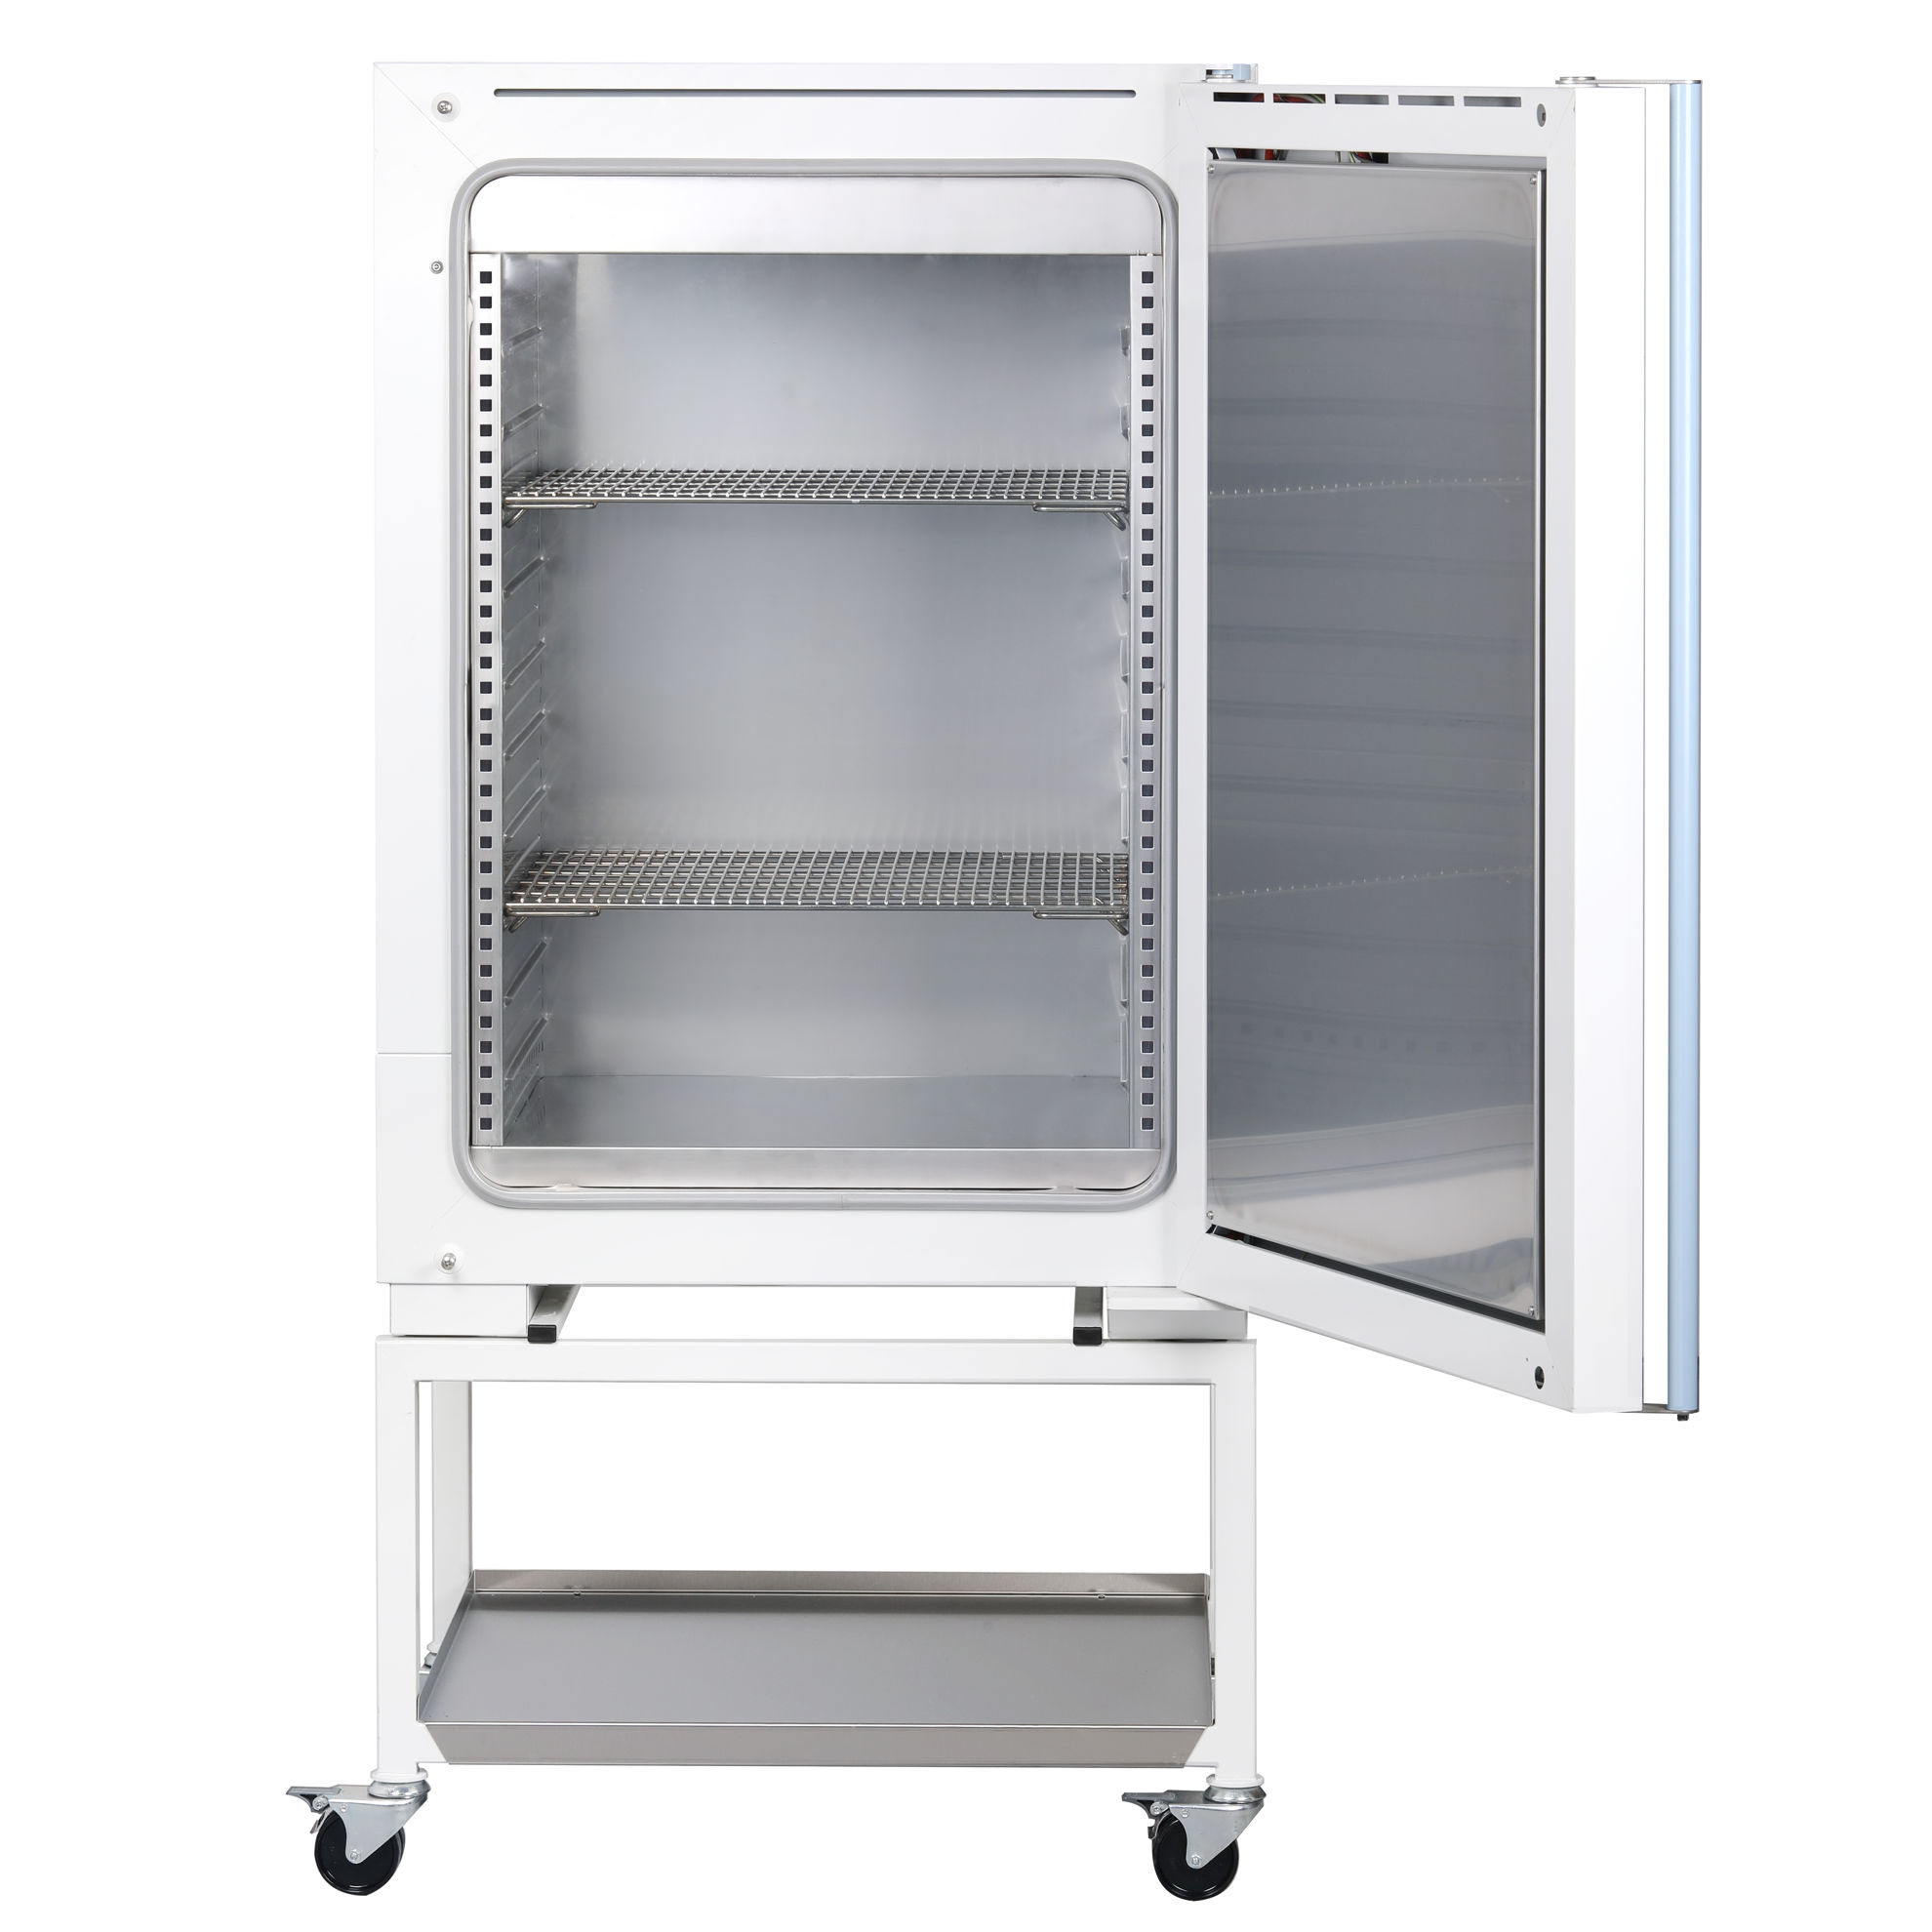 Picture of BMT Venticell ECO Forced Air Ovens - MC000213